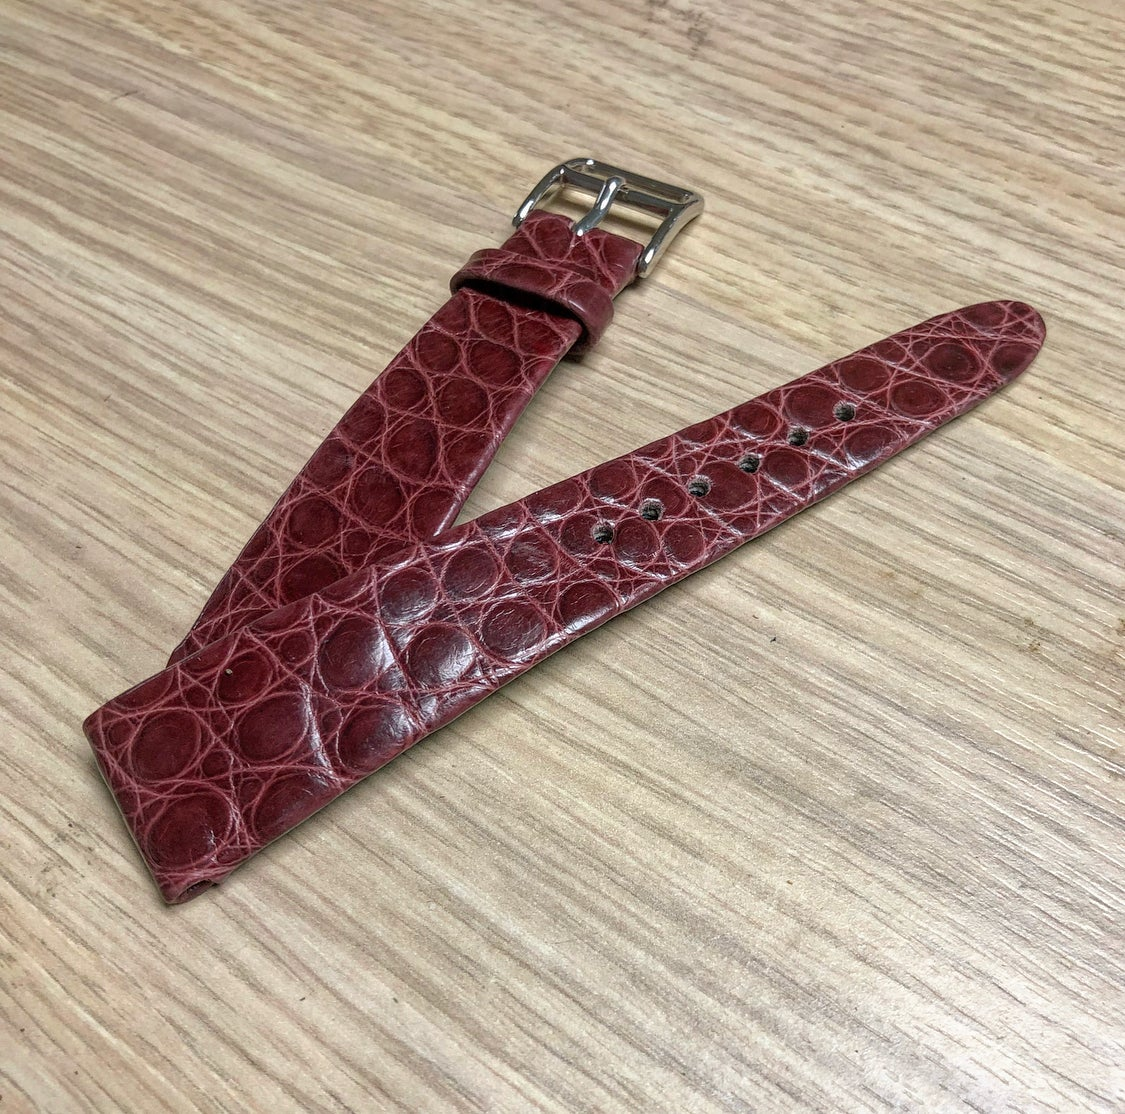 Image of Hand-rolled vintage strap - Burgundy Alligator